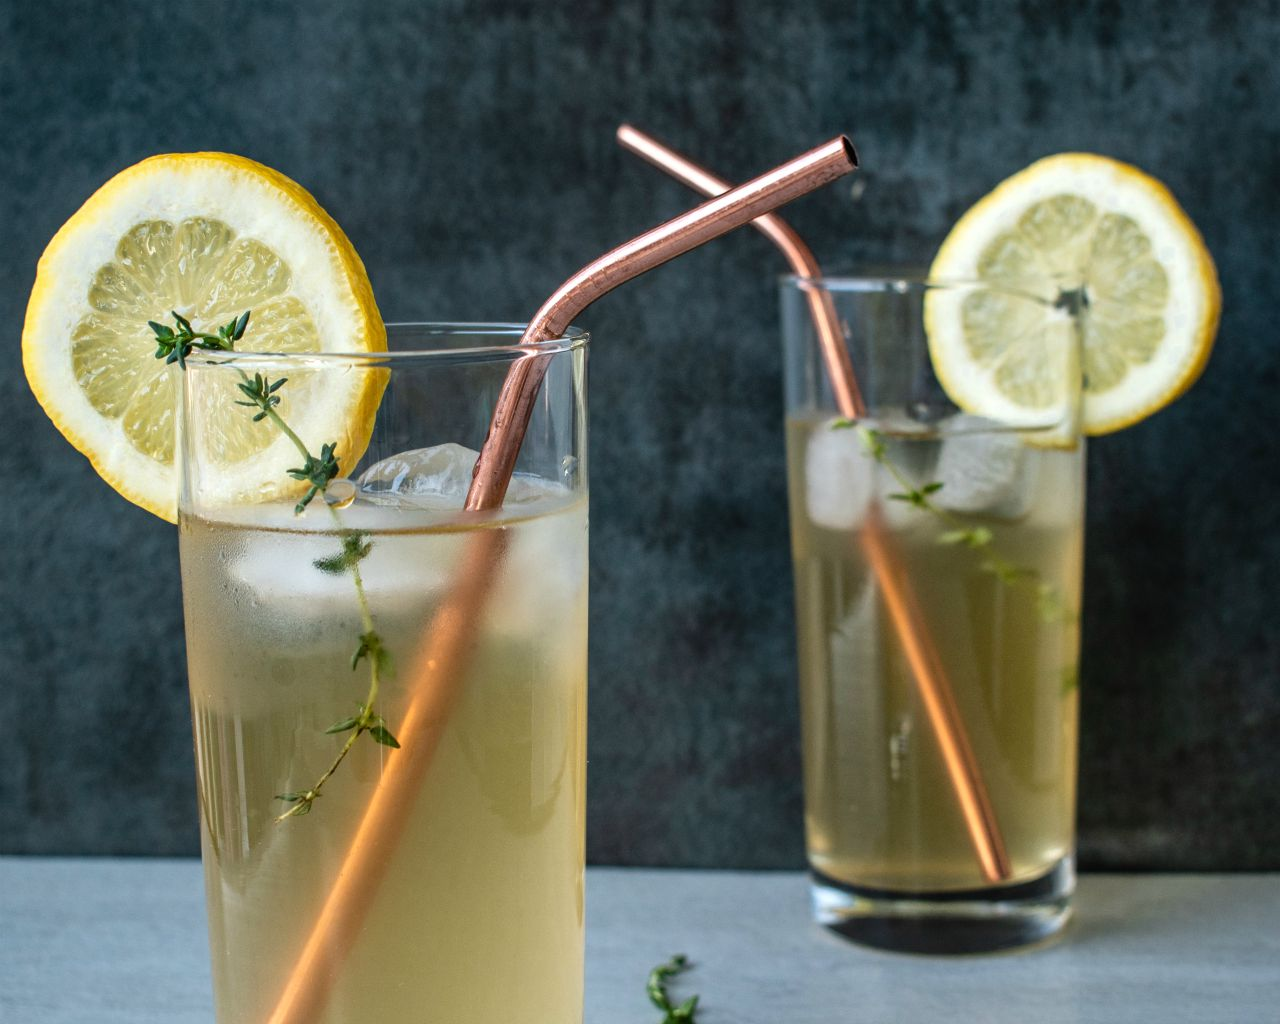 lemonade glasses with lemon slices and straw